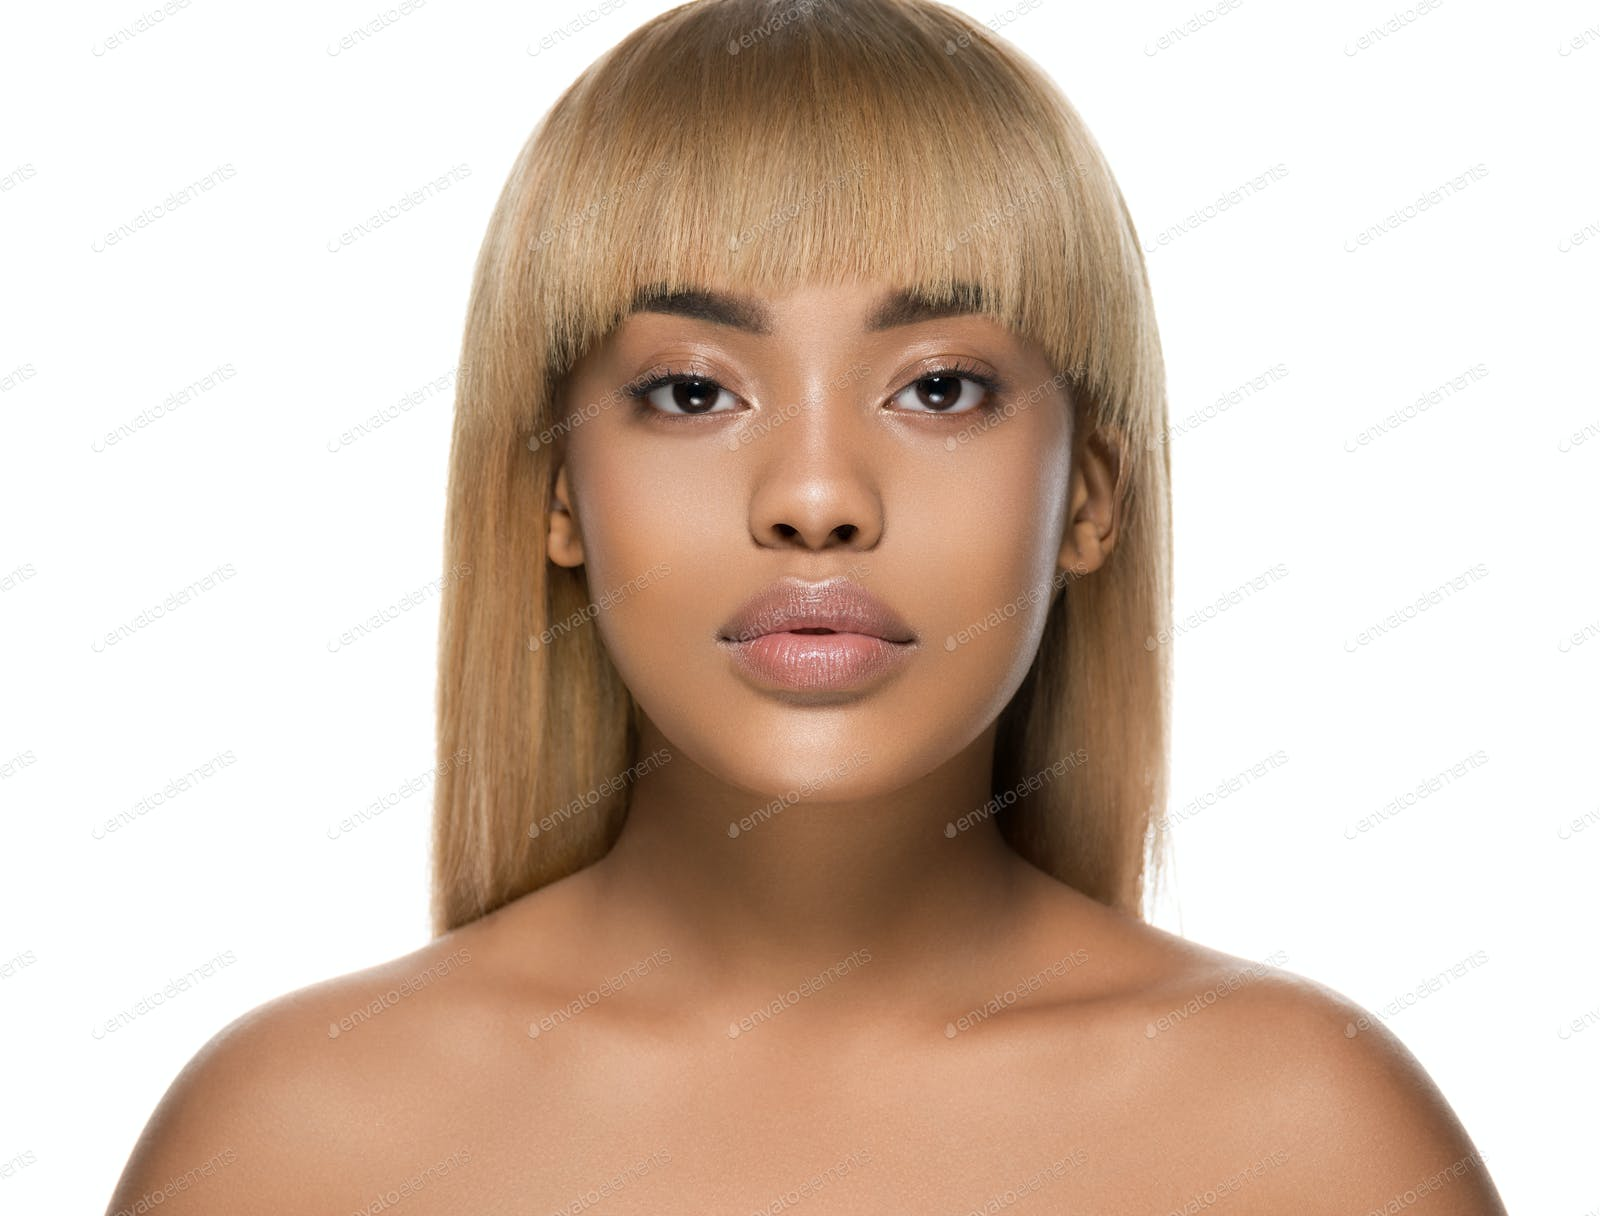 Woman Beauty Afro American Female Beautiful Skincare Face Photo By Kiraliffe On Envato Elements